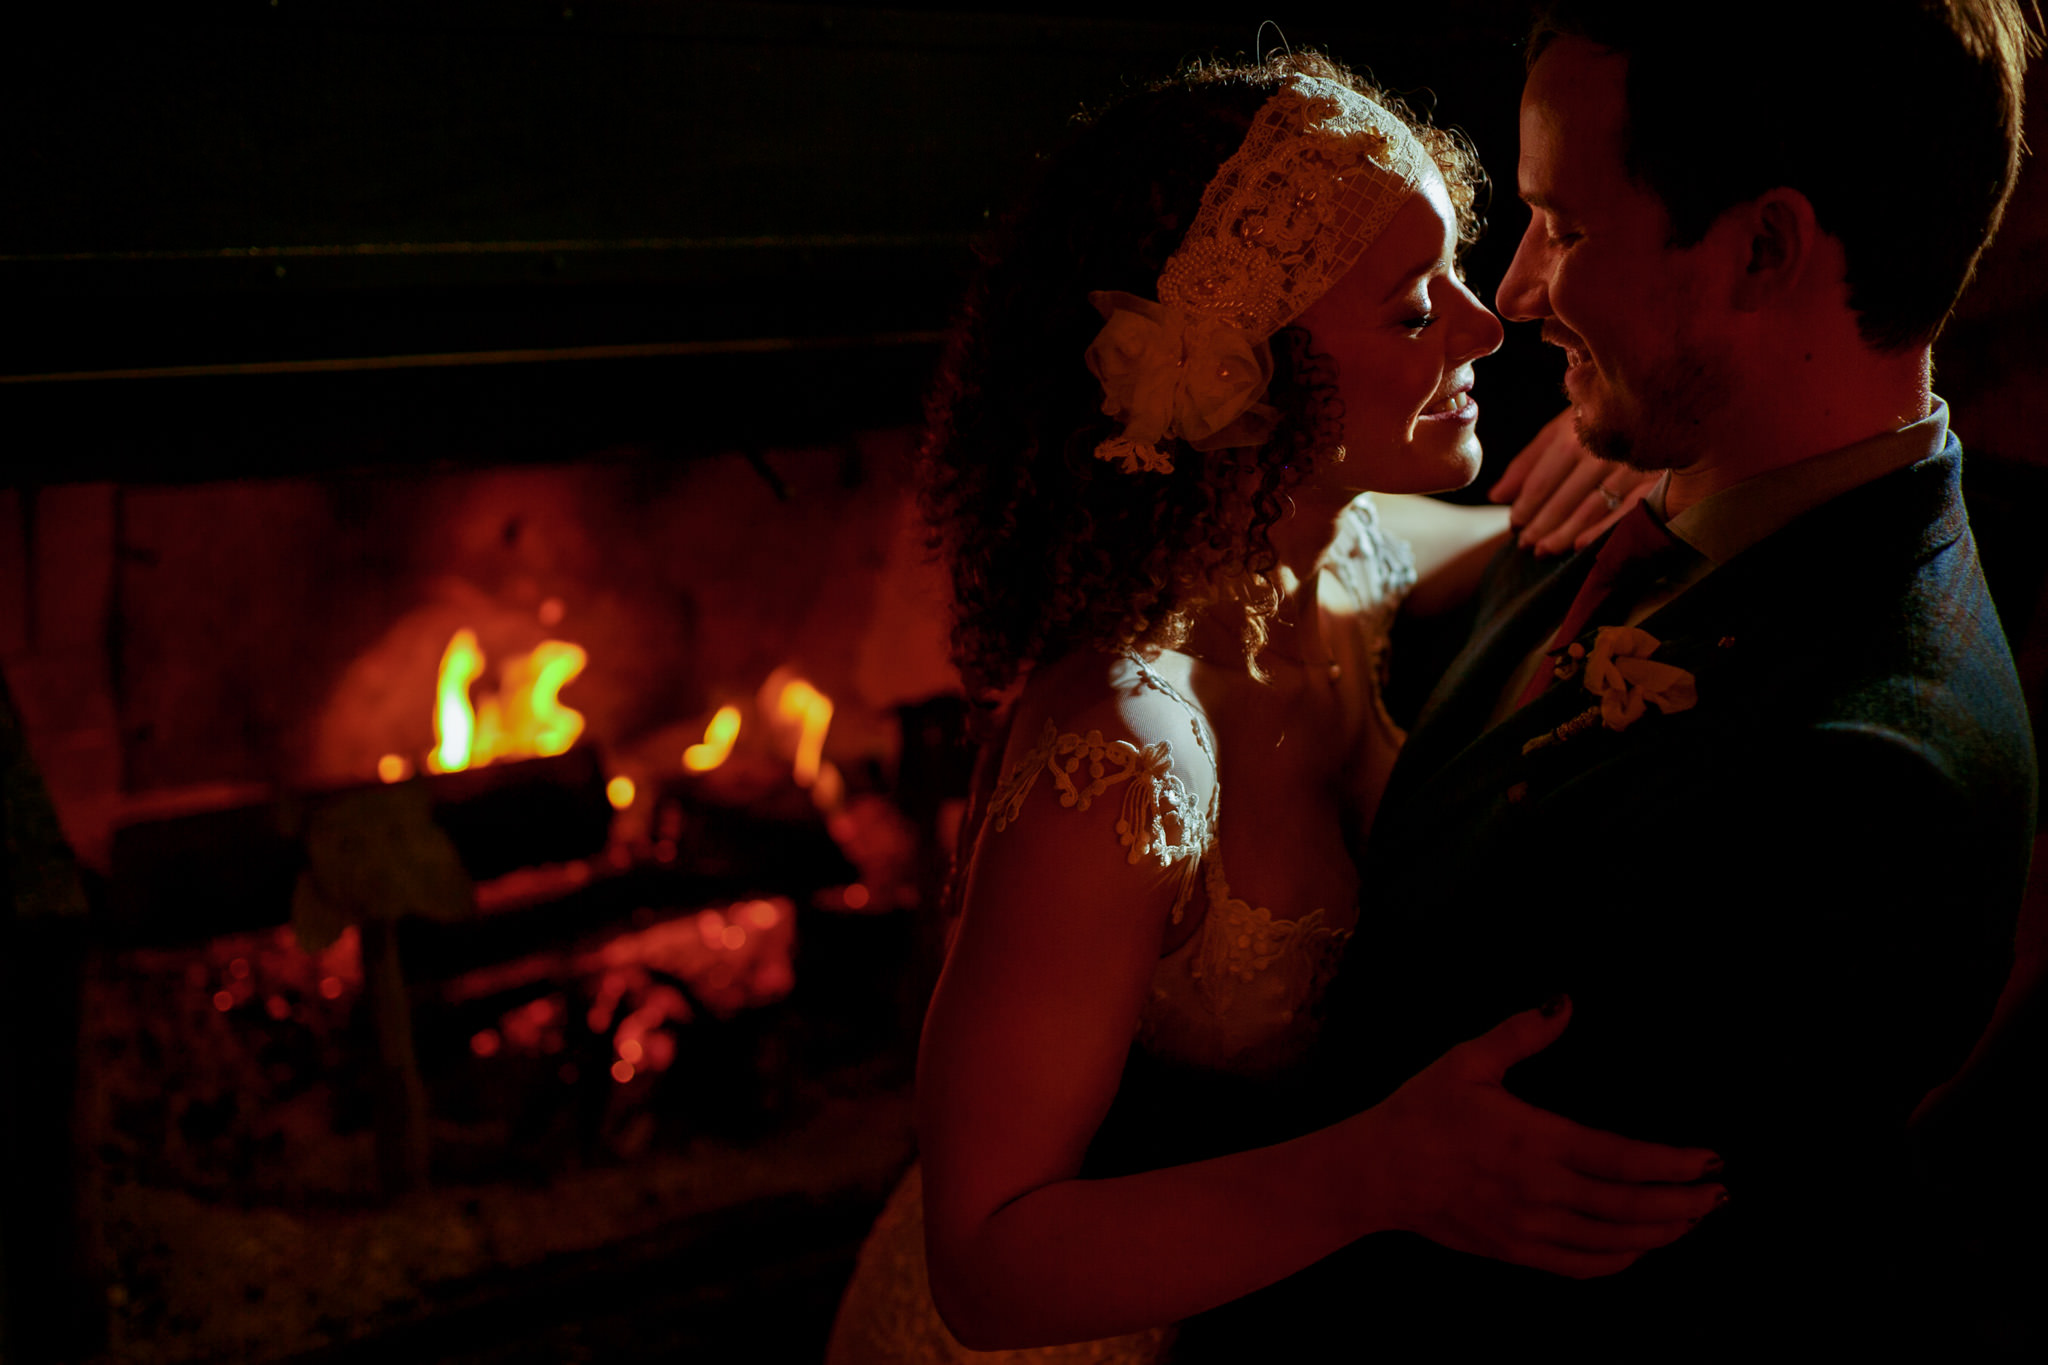 Bride and Groom intimate embrace near fireside at Silcox Hut atop Mt Hood at Timberline LodgeBride and Groom intimate embrace near fireside at Silcox Hut atop Mt Hood at Timberline Lodge